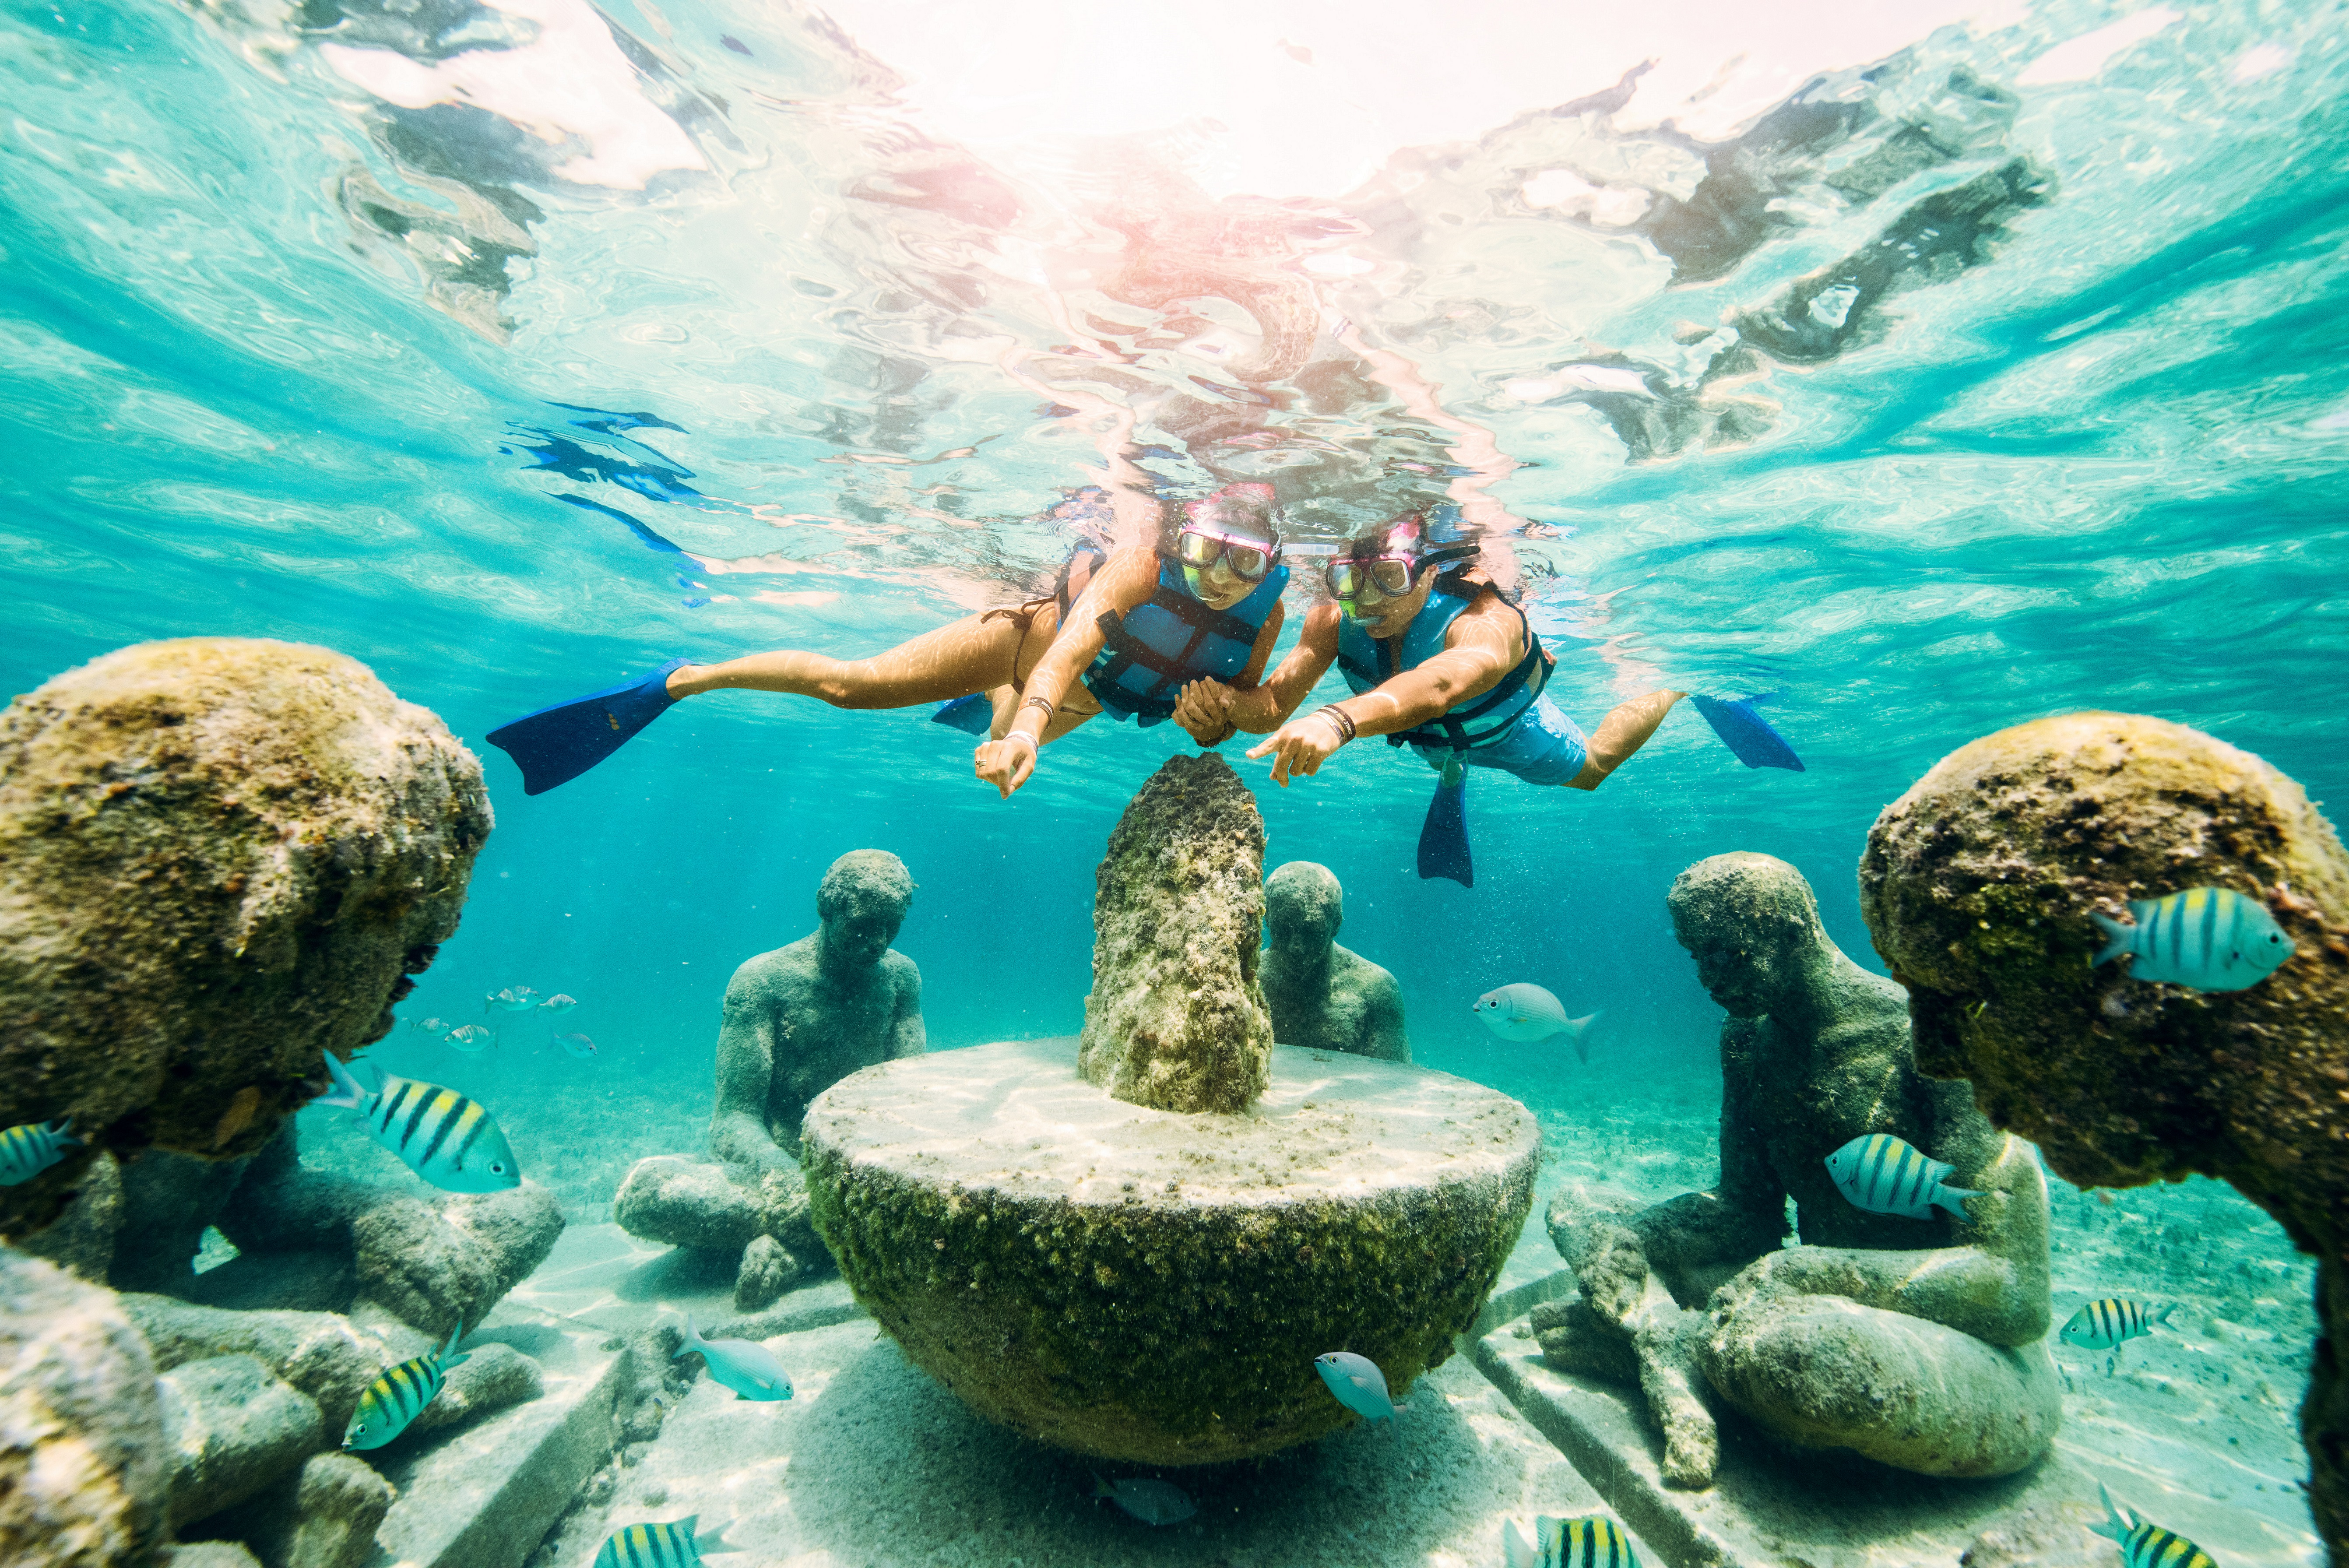 Snorkel to discover the underwater world